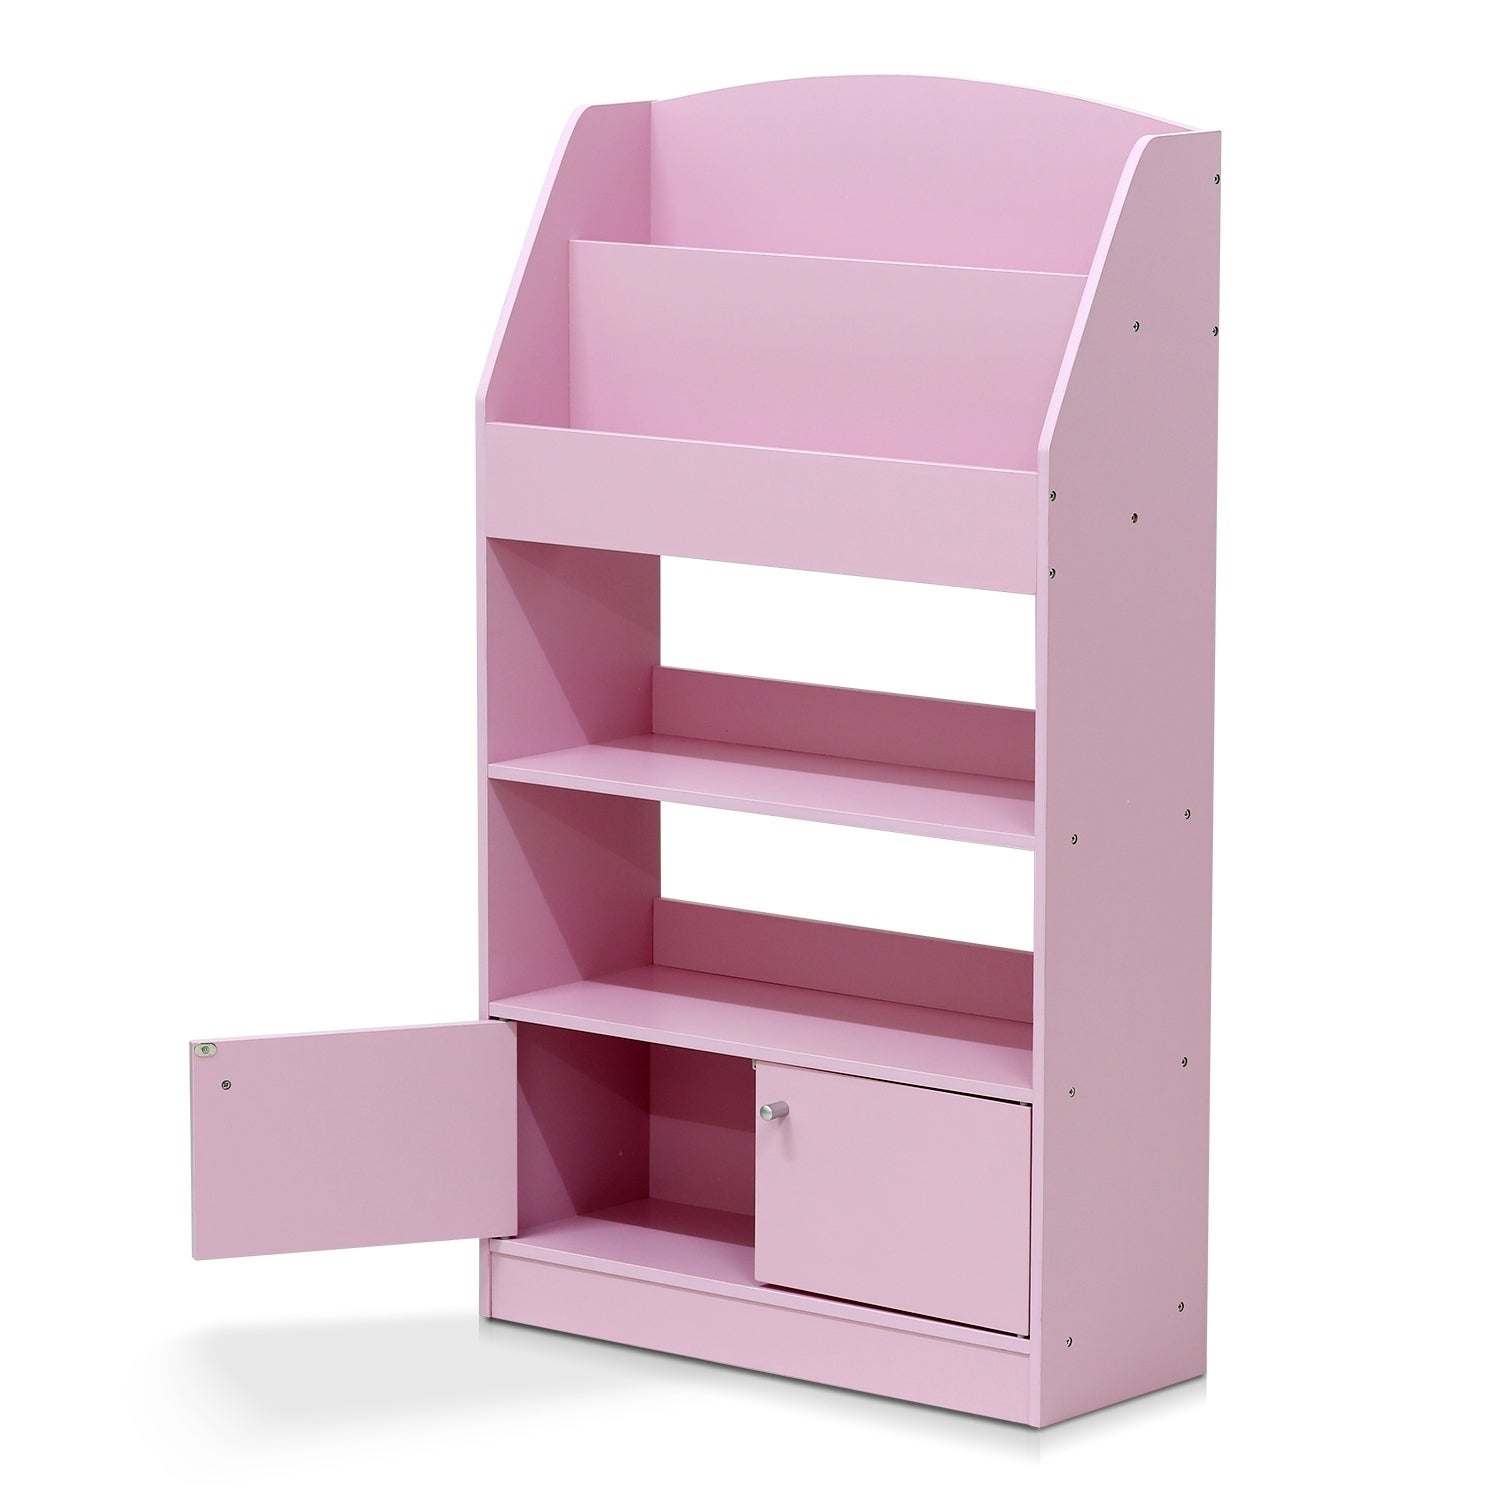 Lovely Kidkanac Magazine/Bookshelf With Toy Storage Cabinet   Free Shipping Today    Overstock   24368849